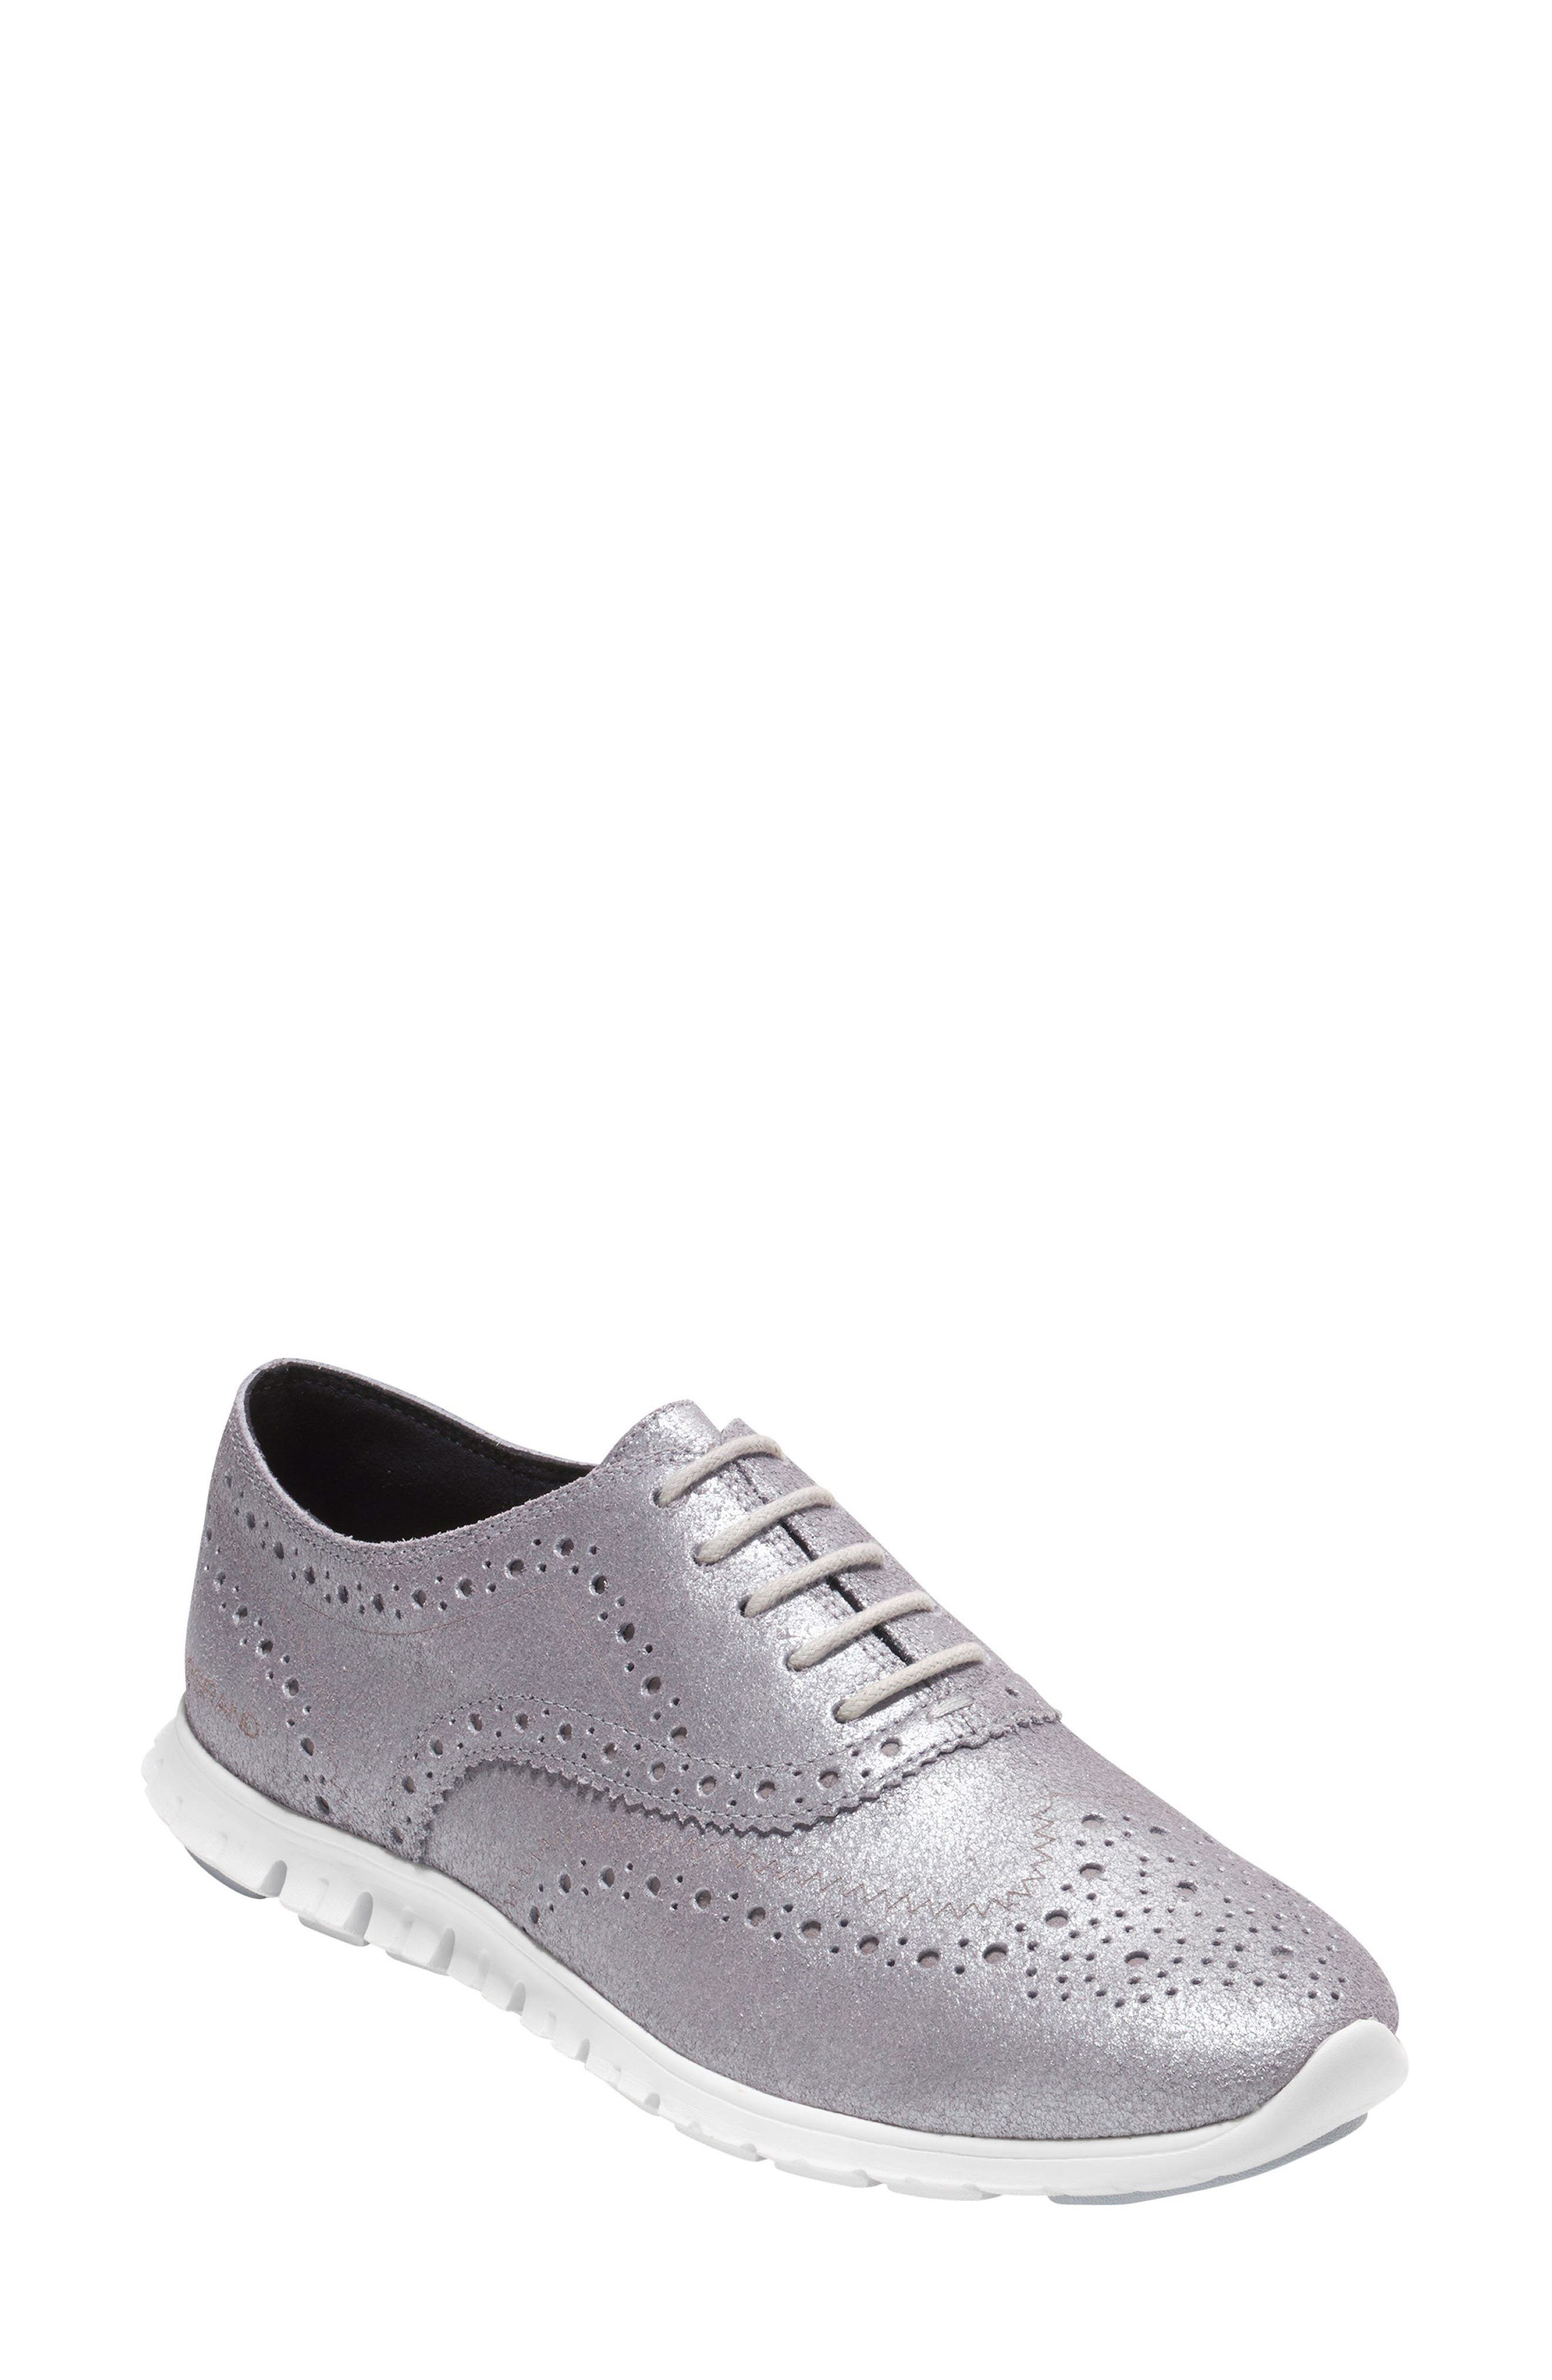 ZERØGRAND Wingtip Oxford Sneaker,                         Main,                         color, 020